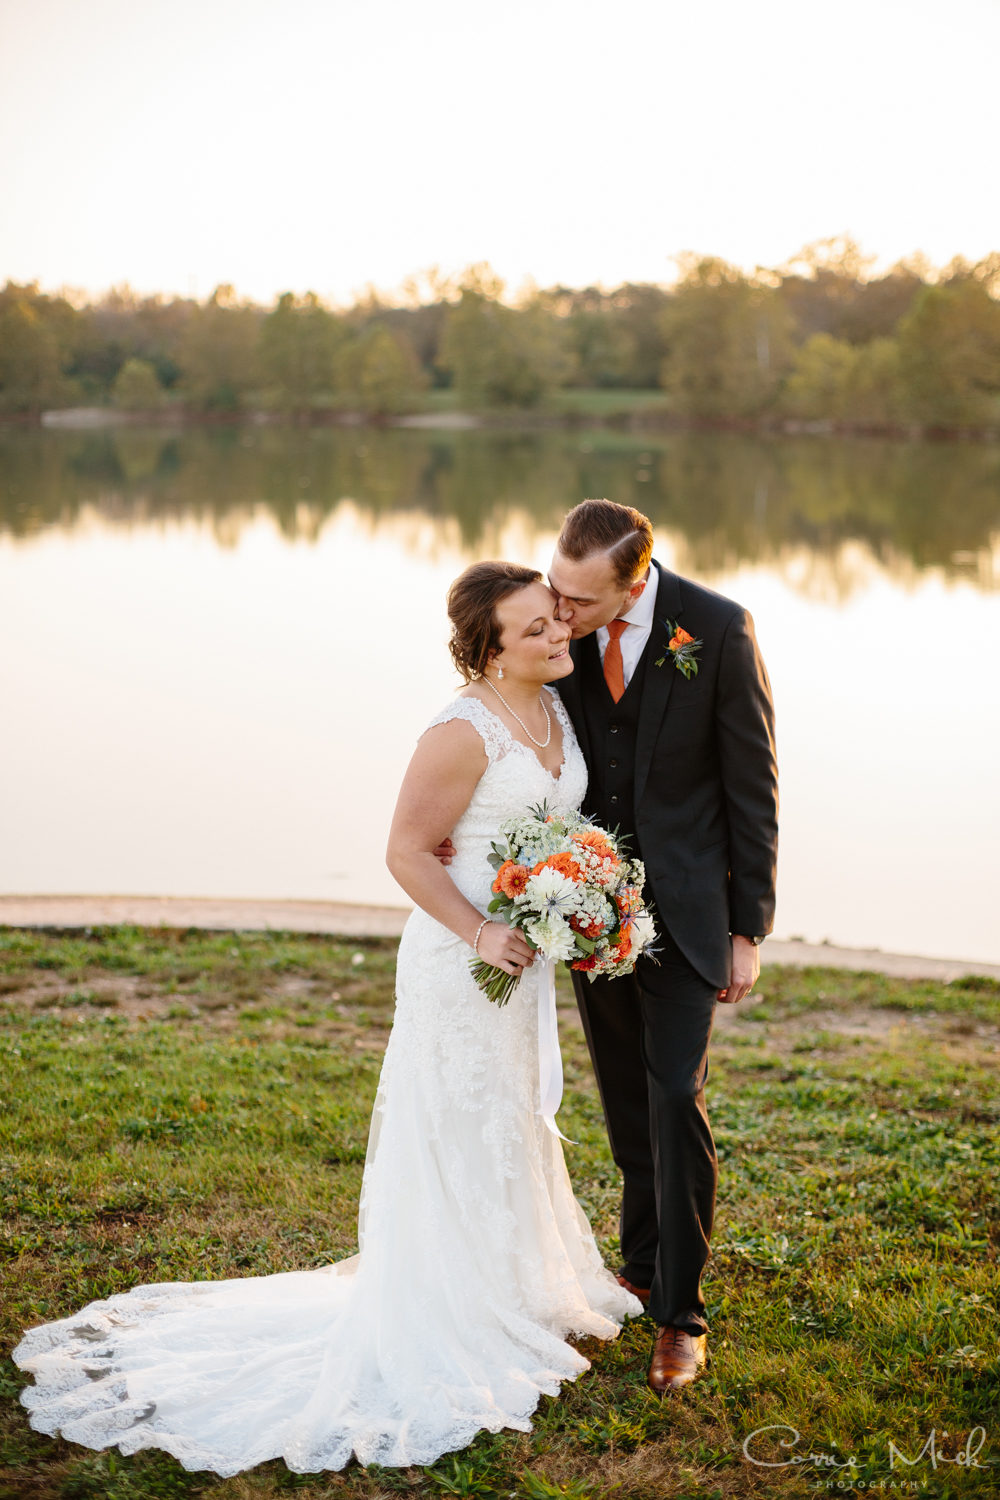 Lake Lyndsay Wedding - Portland, Oregon Photographer - Corrie Mick Photography-414.jpg